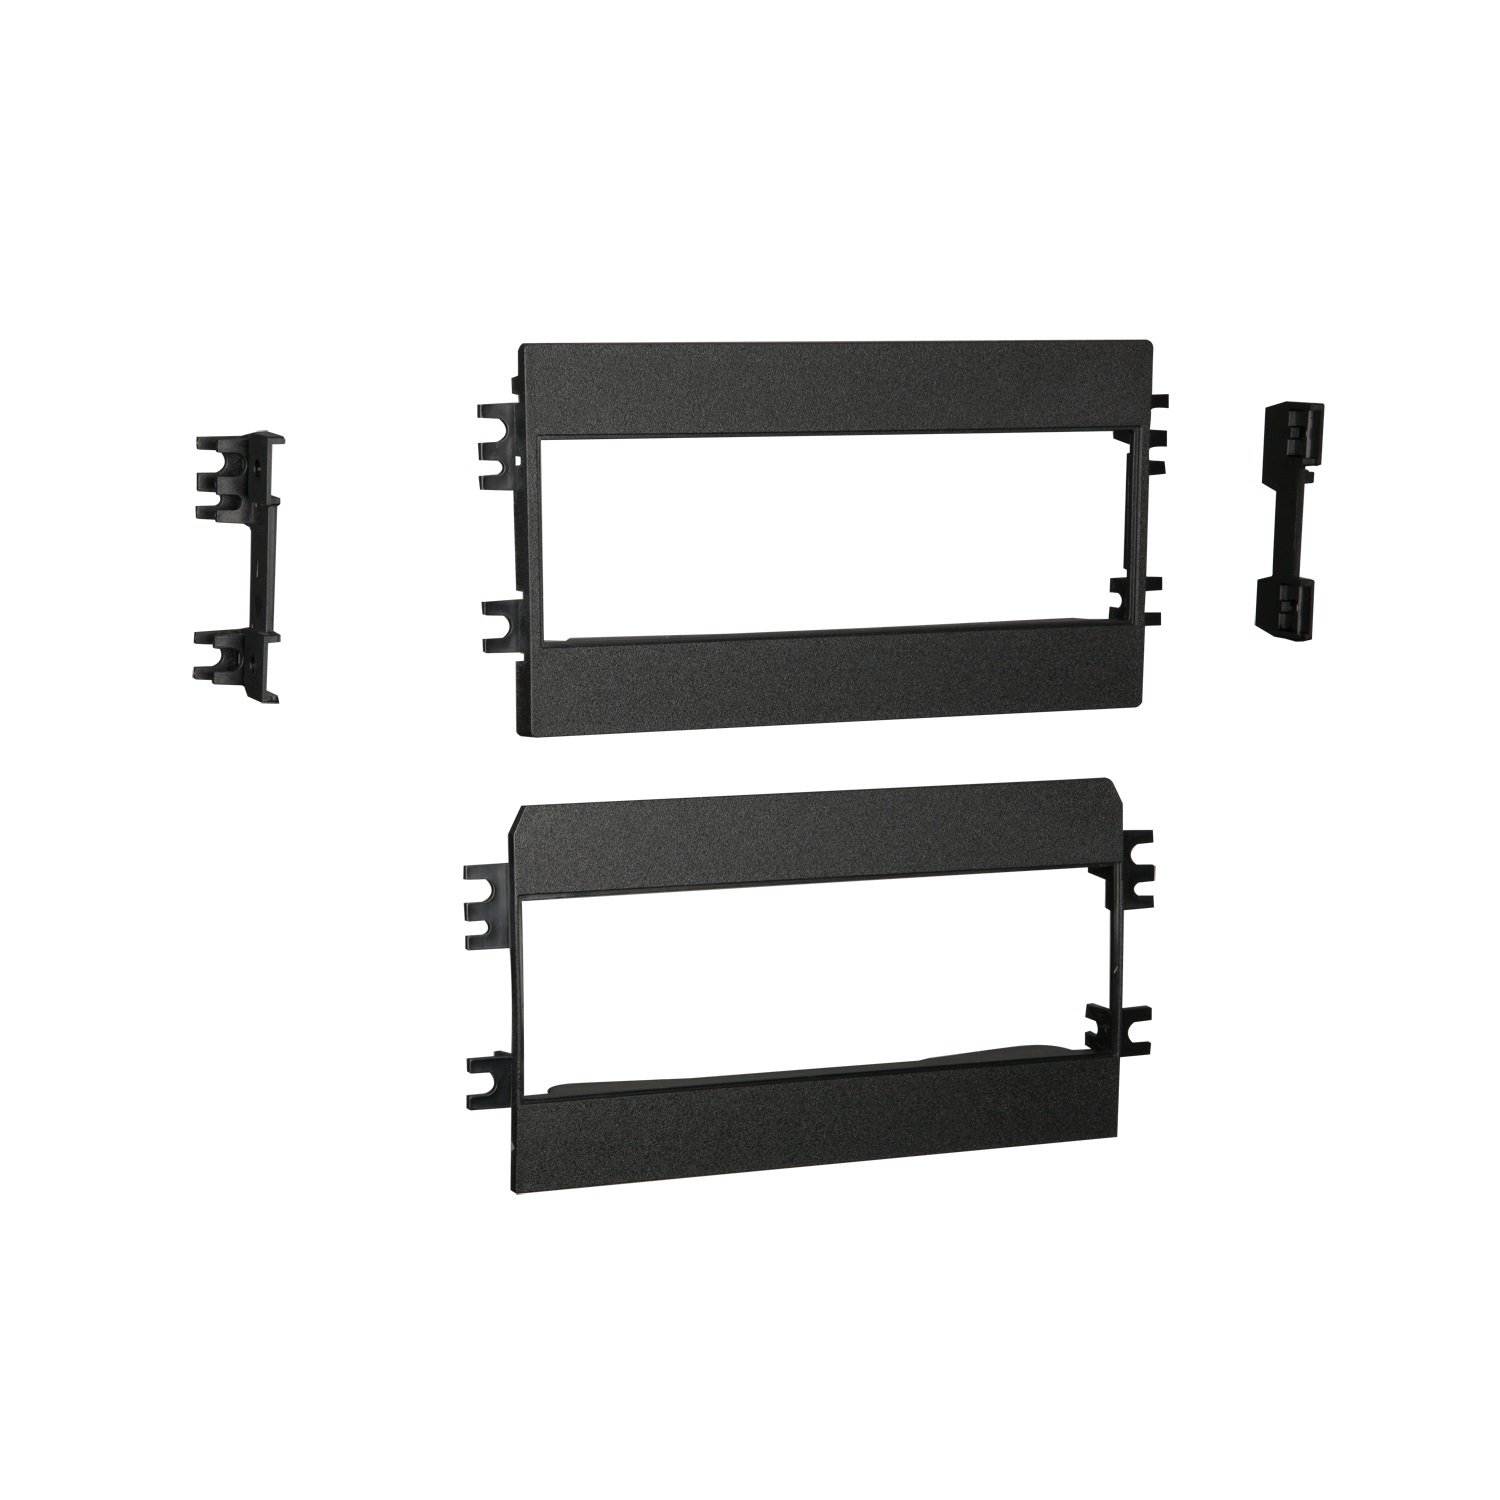 Amazon.com: Metra 99-1003 Dash Kit For Kia Sportage/Sephia 95-02 ...